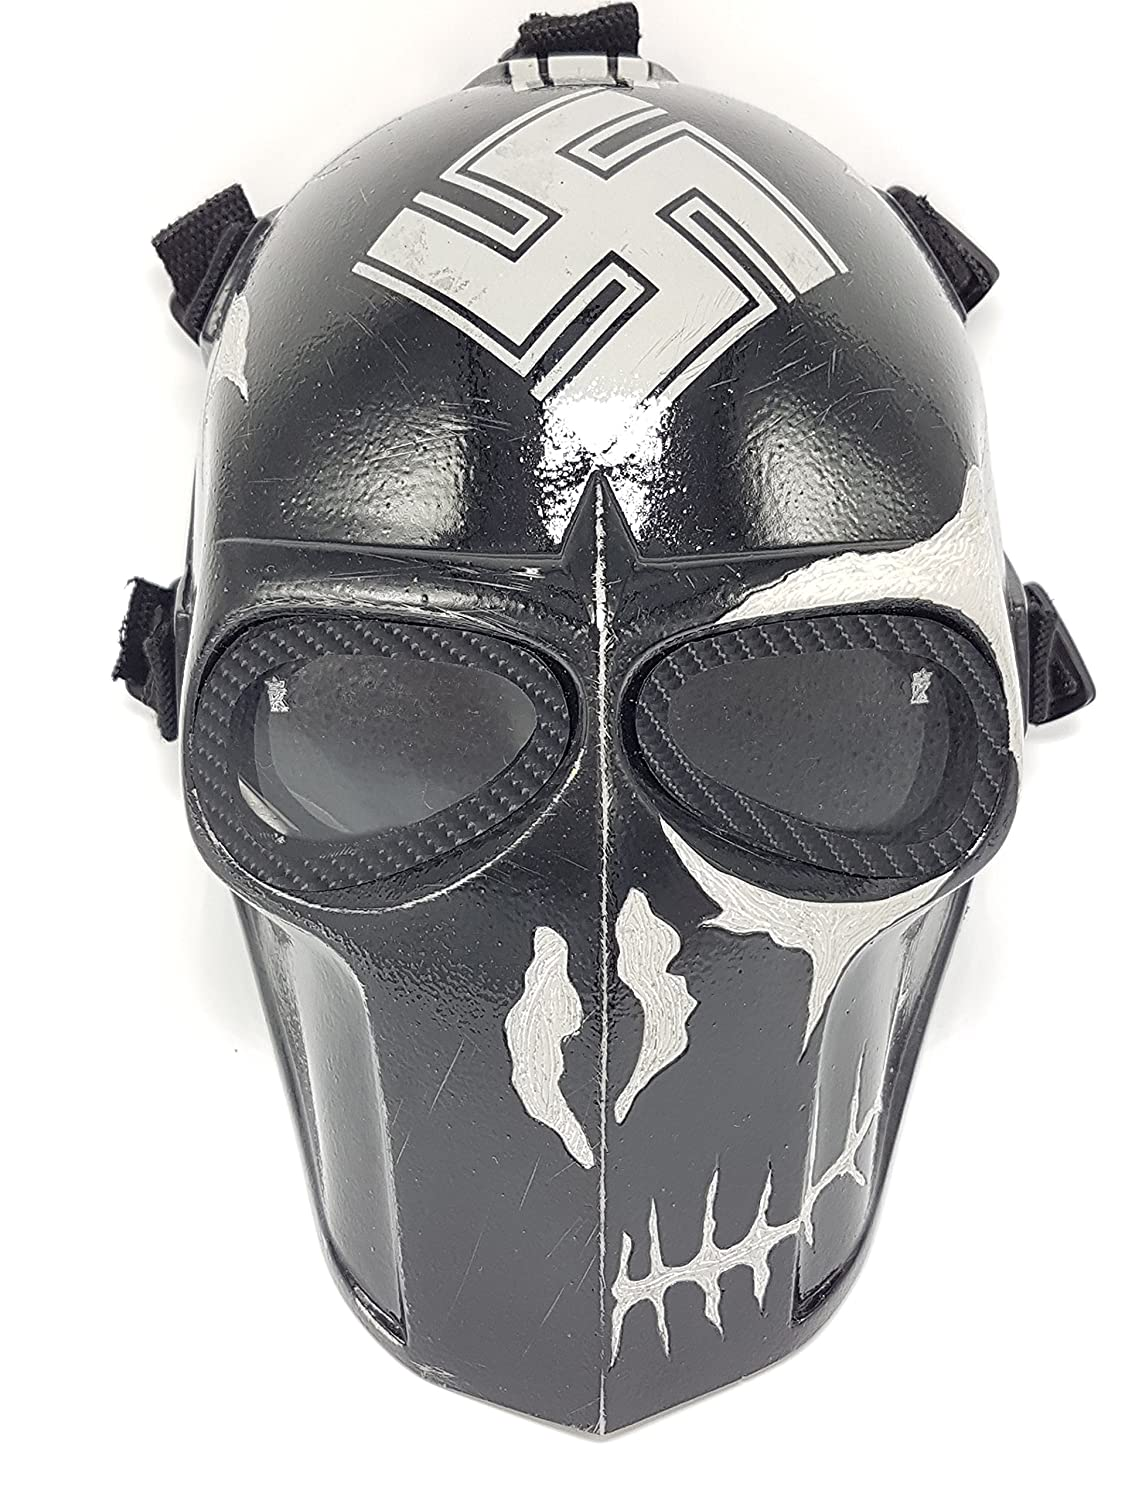 Amazon.com : Invader King ® Zombie Army of Two Airsoft Mask ...